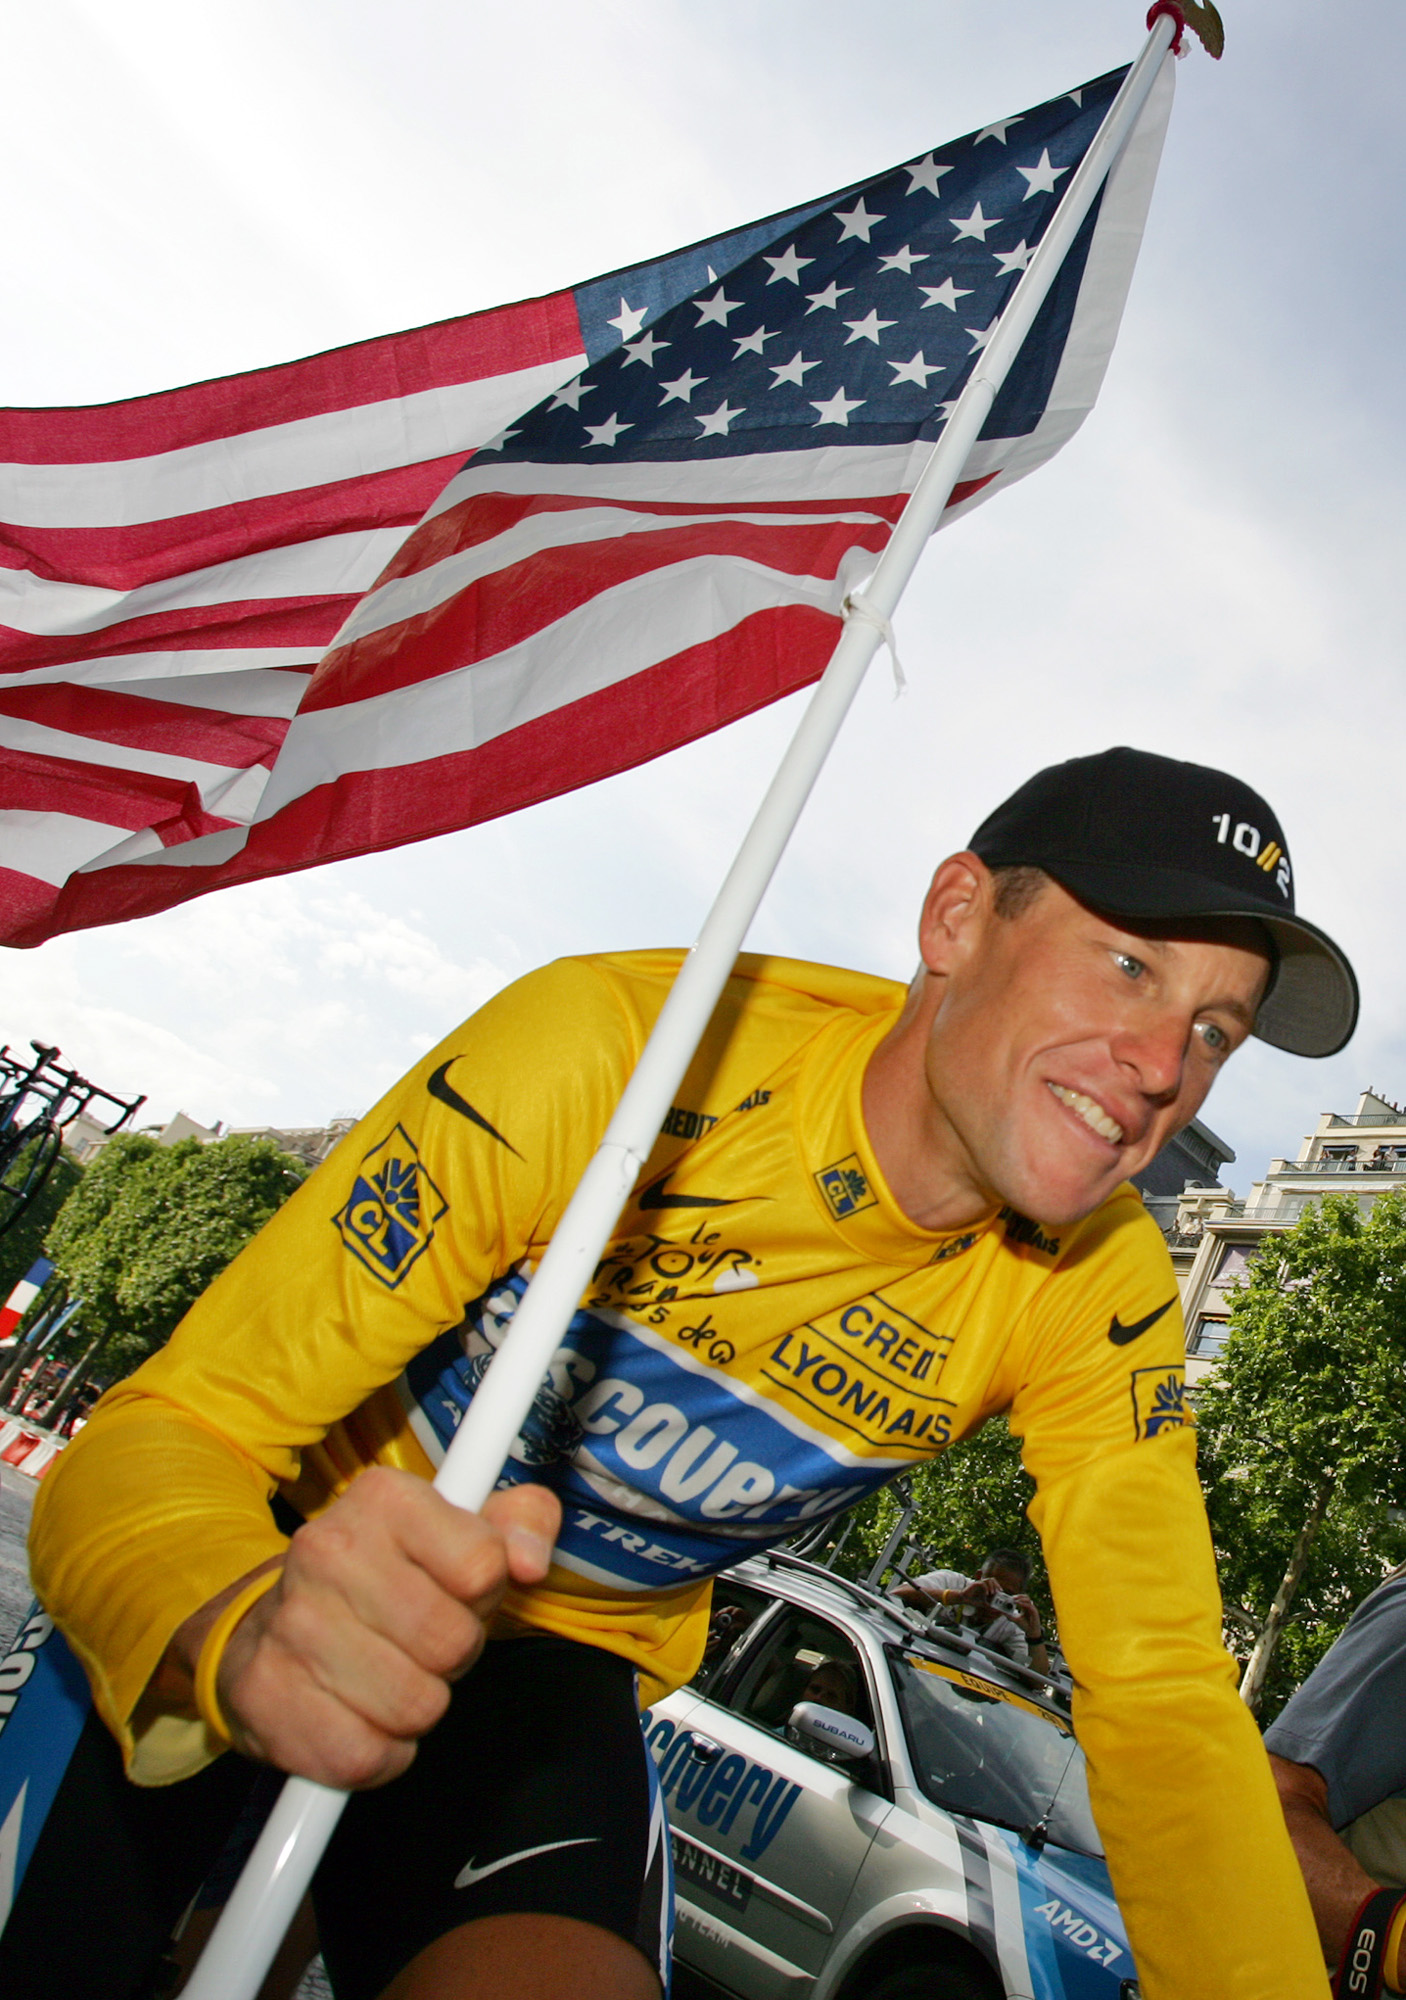 Lance Armstrong was stripped of his seven Tour de France titles last year. (AP)